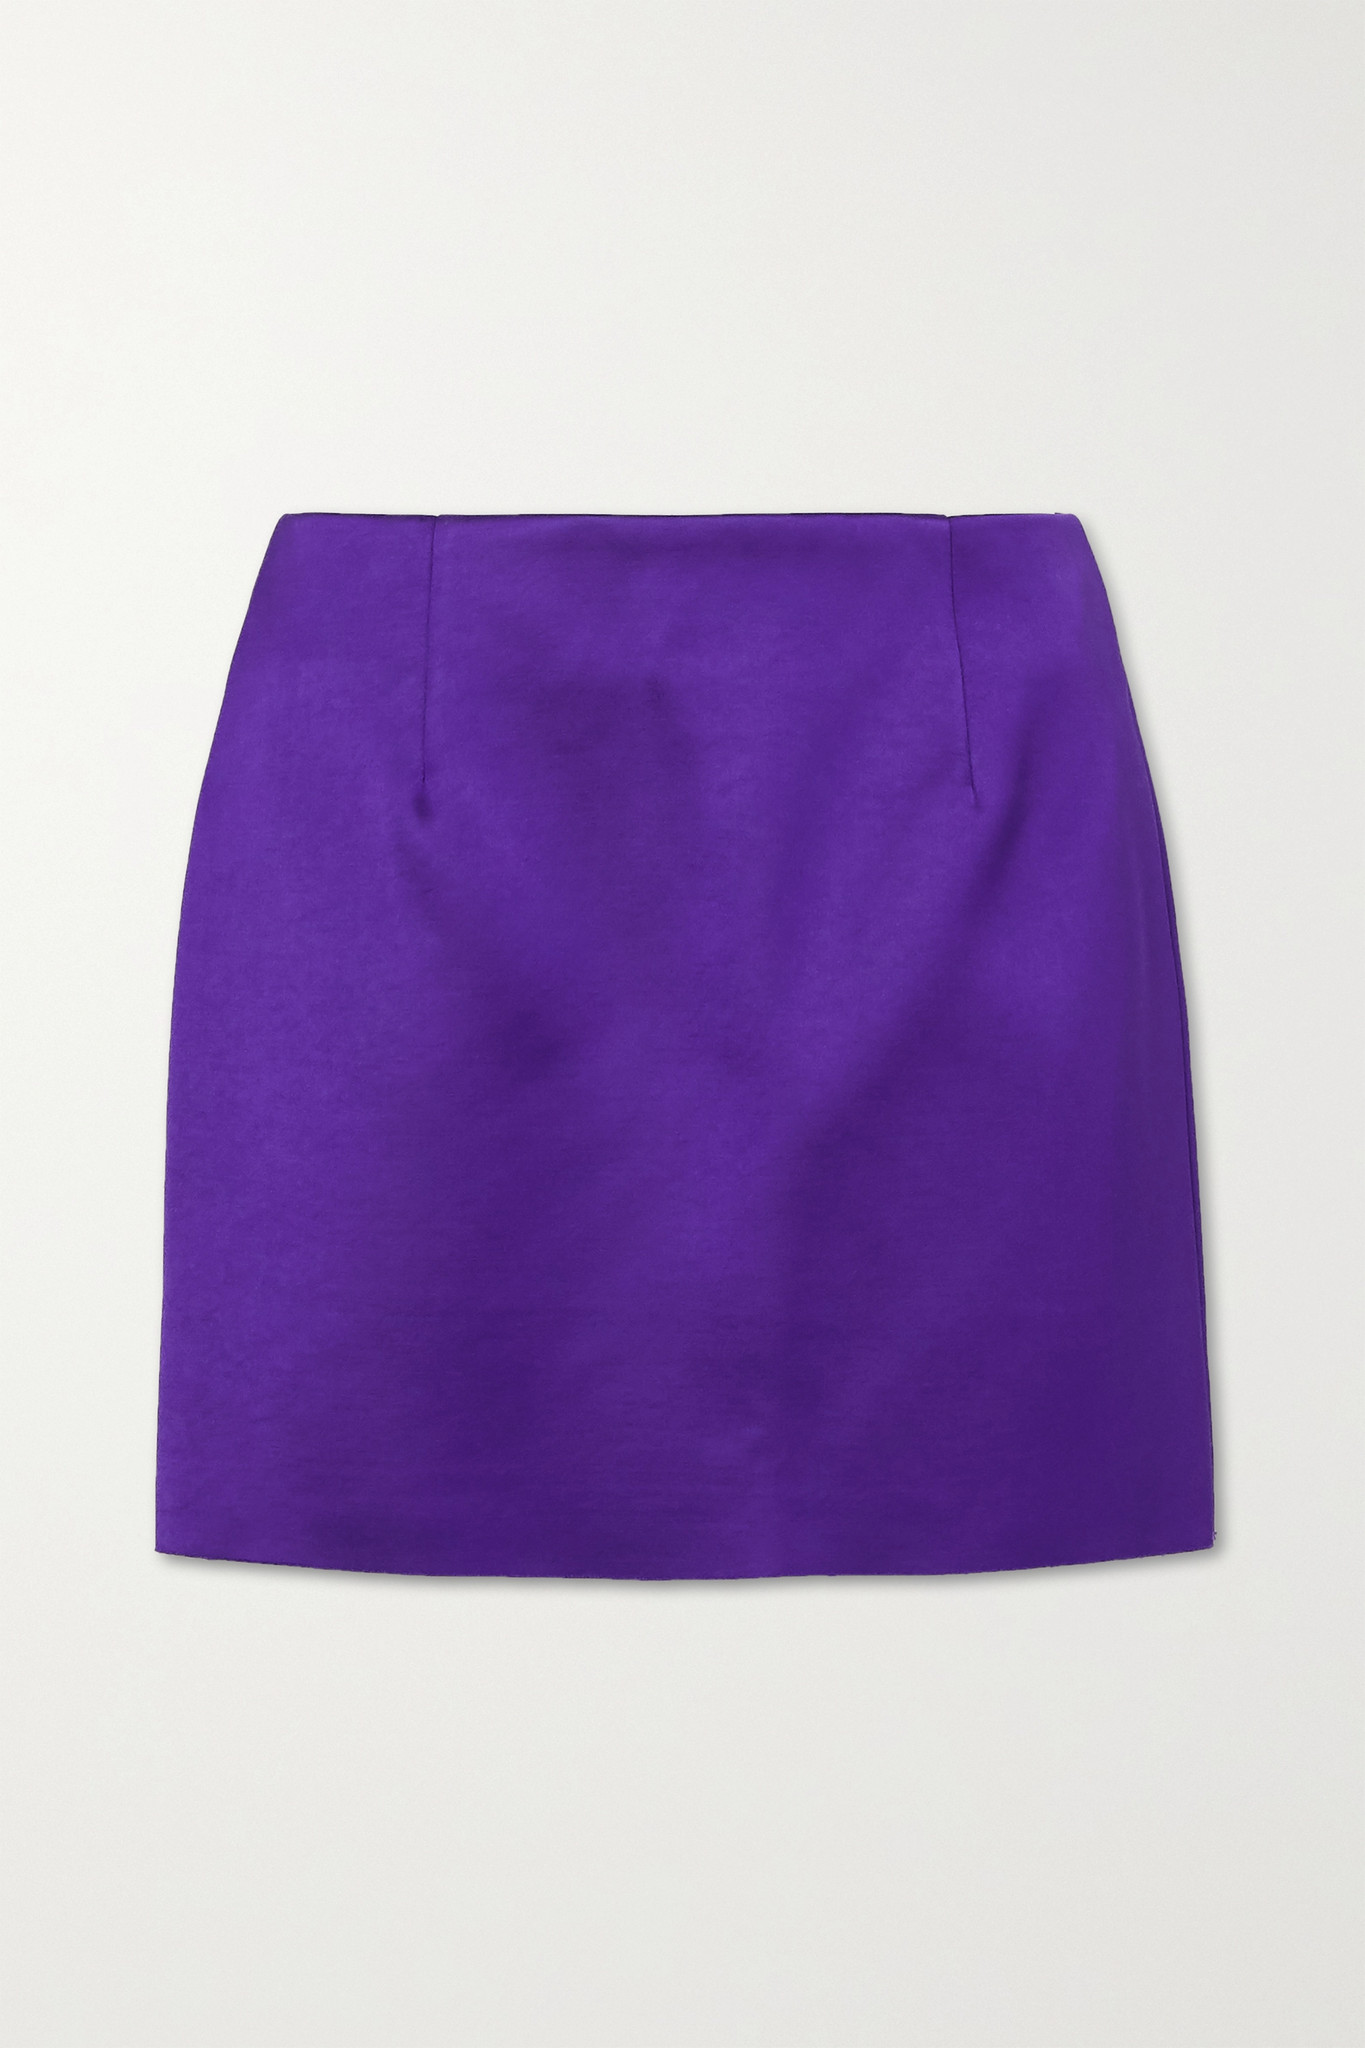 GEORGIA ALICE - Power Satin Mini Skirt - Purple - UK12